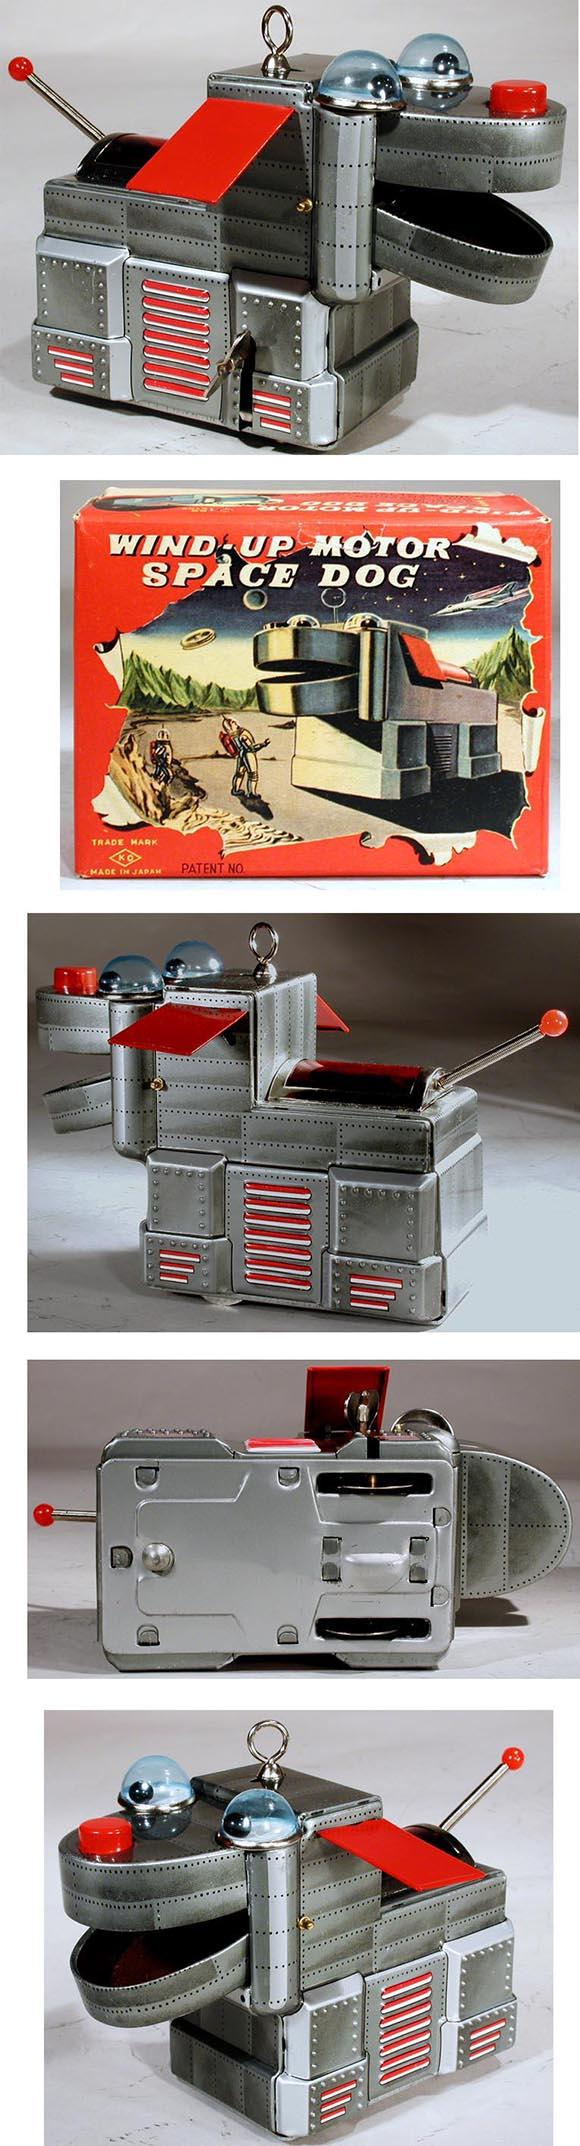 1956 Yoshiya, Wind-Up Motor Space Dog in Original Box